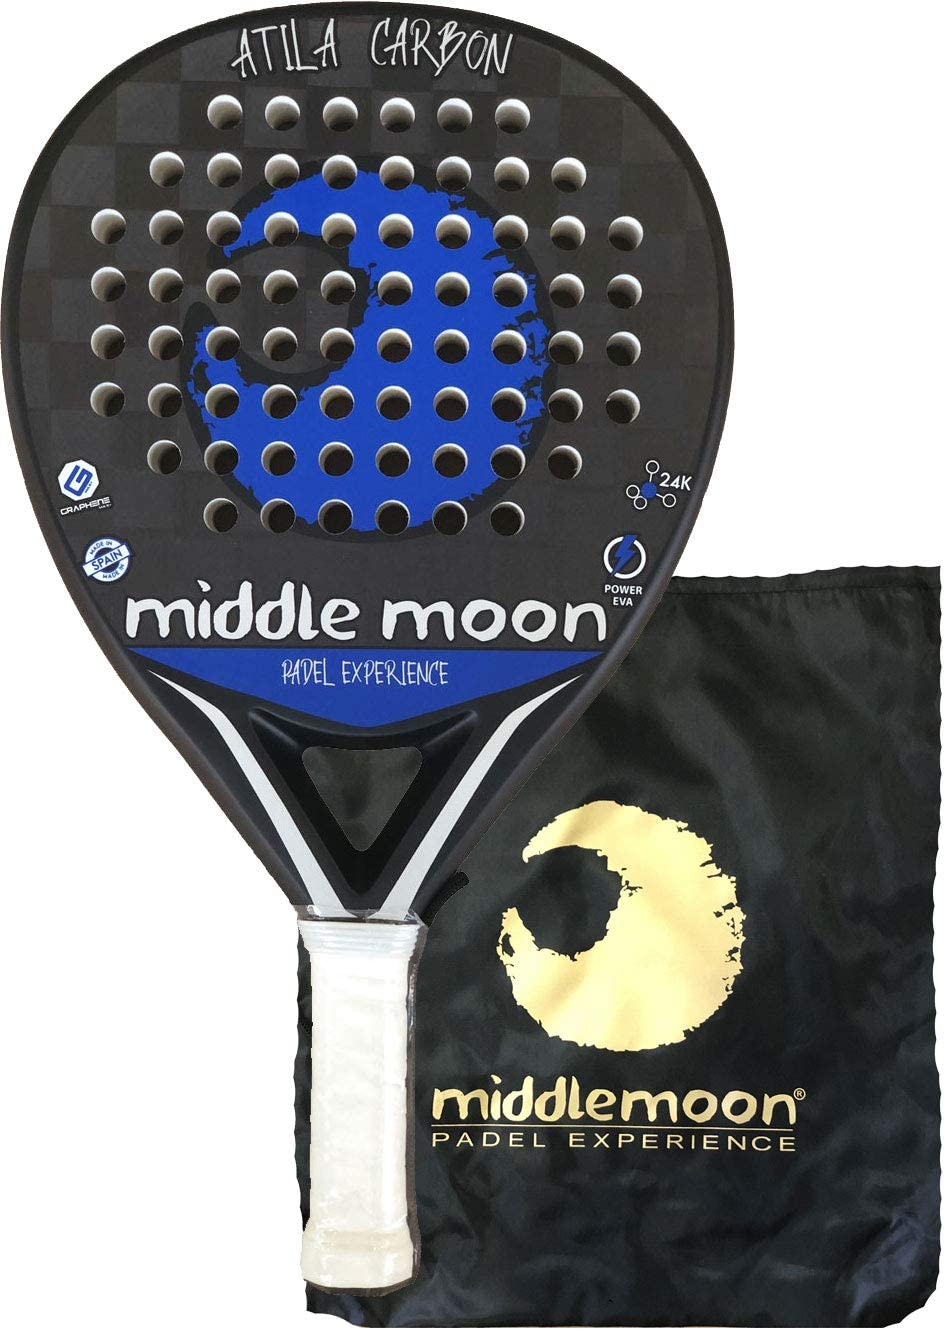 Middle Moon Pala de Pádel ATILA Carbon 24K 2019: Amazon.es ...